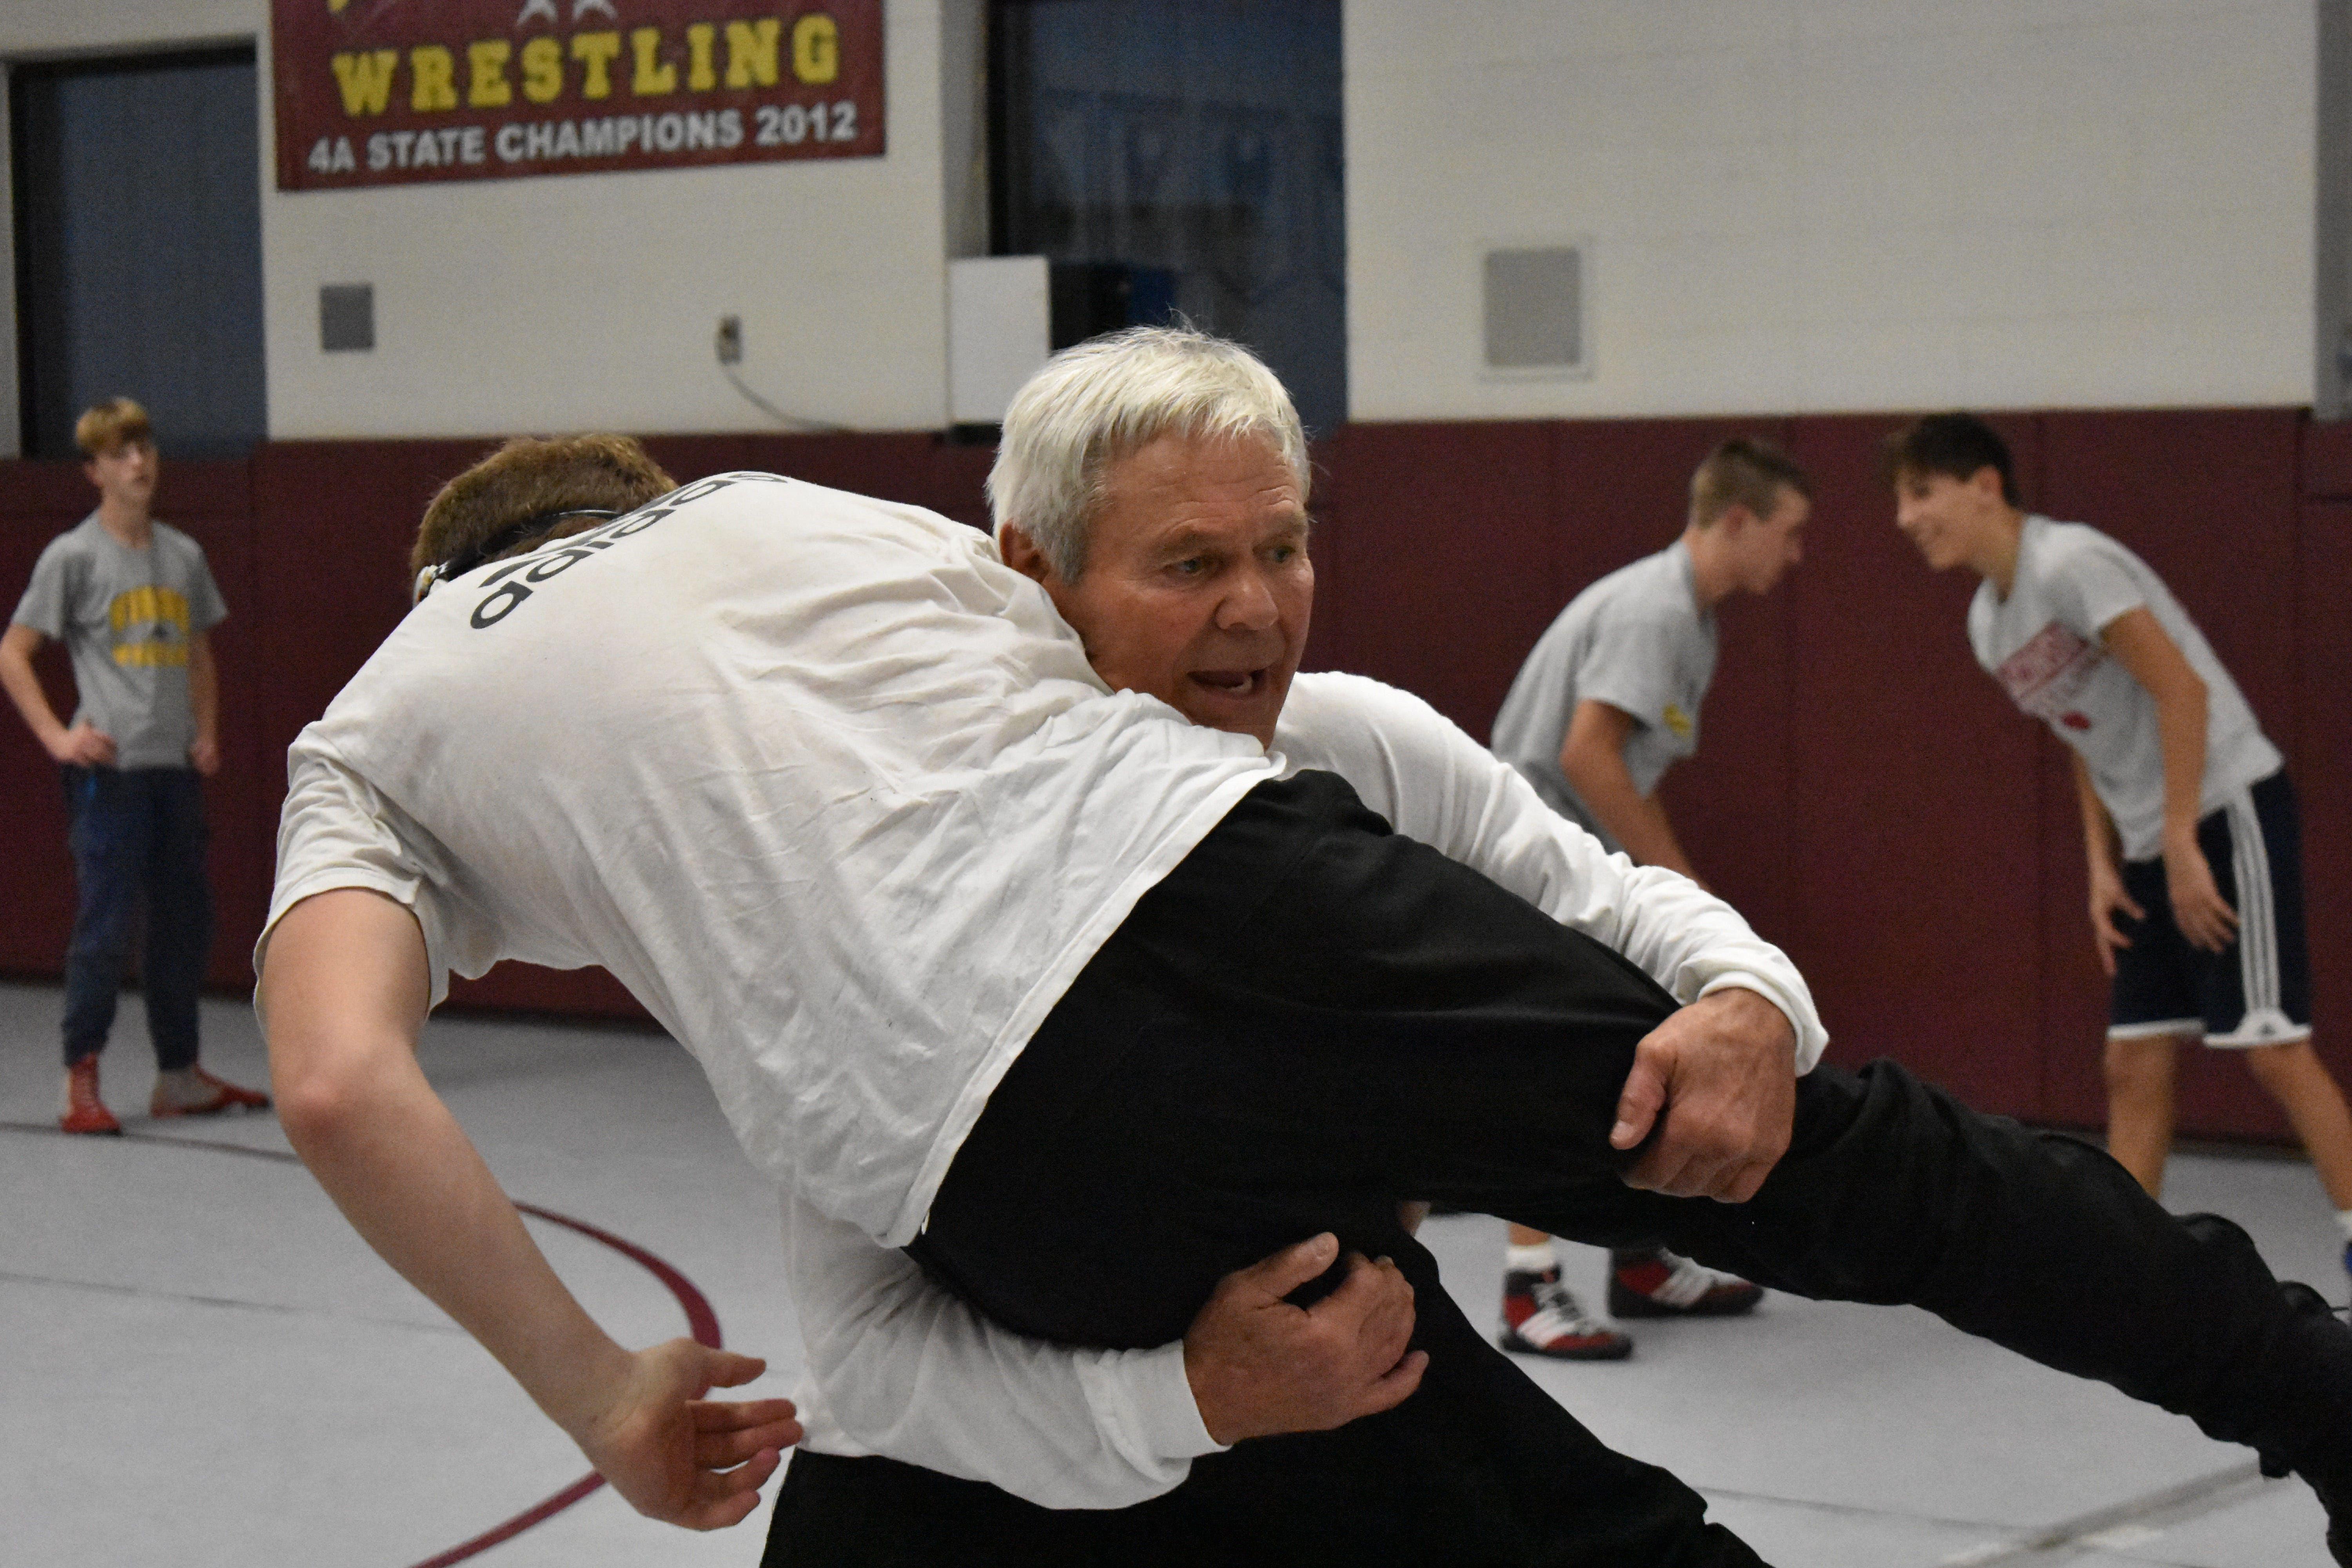 Wrestling trainer instructs 2 students